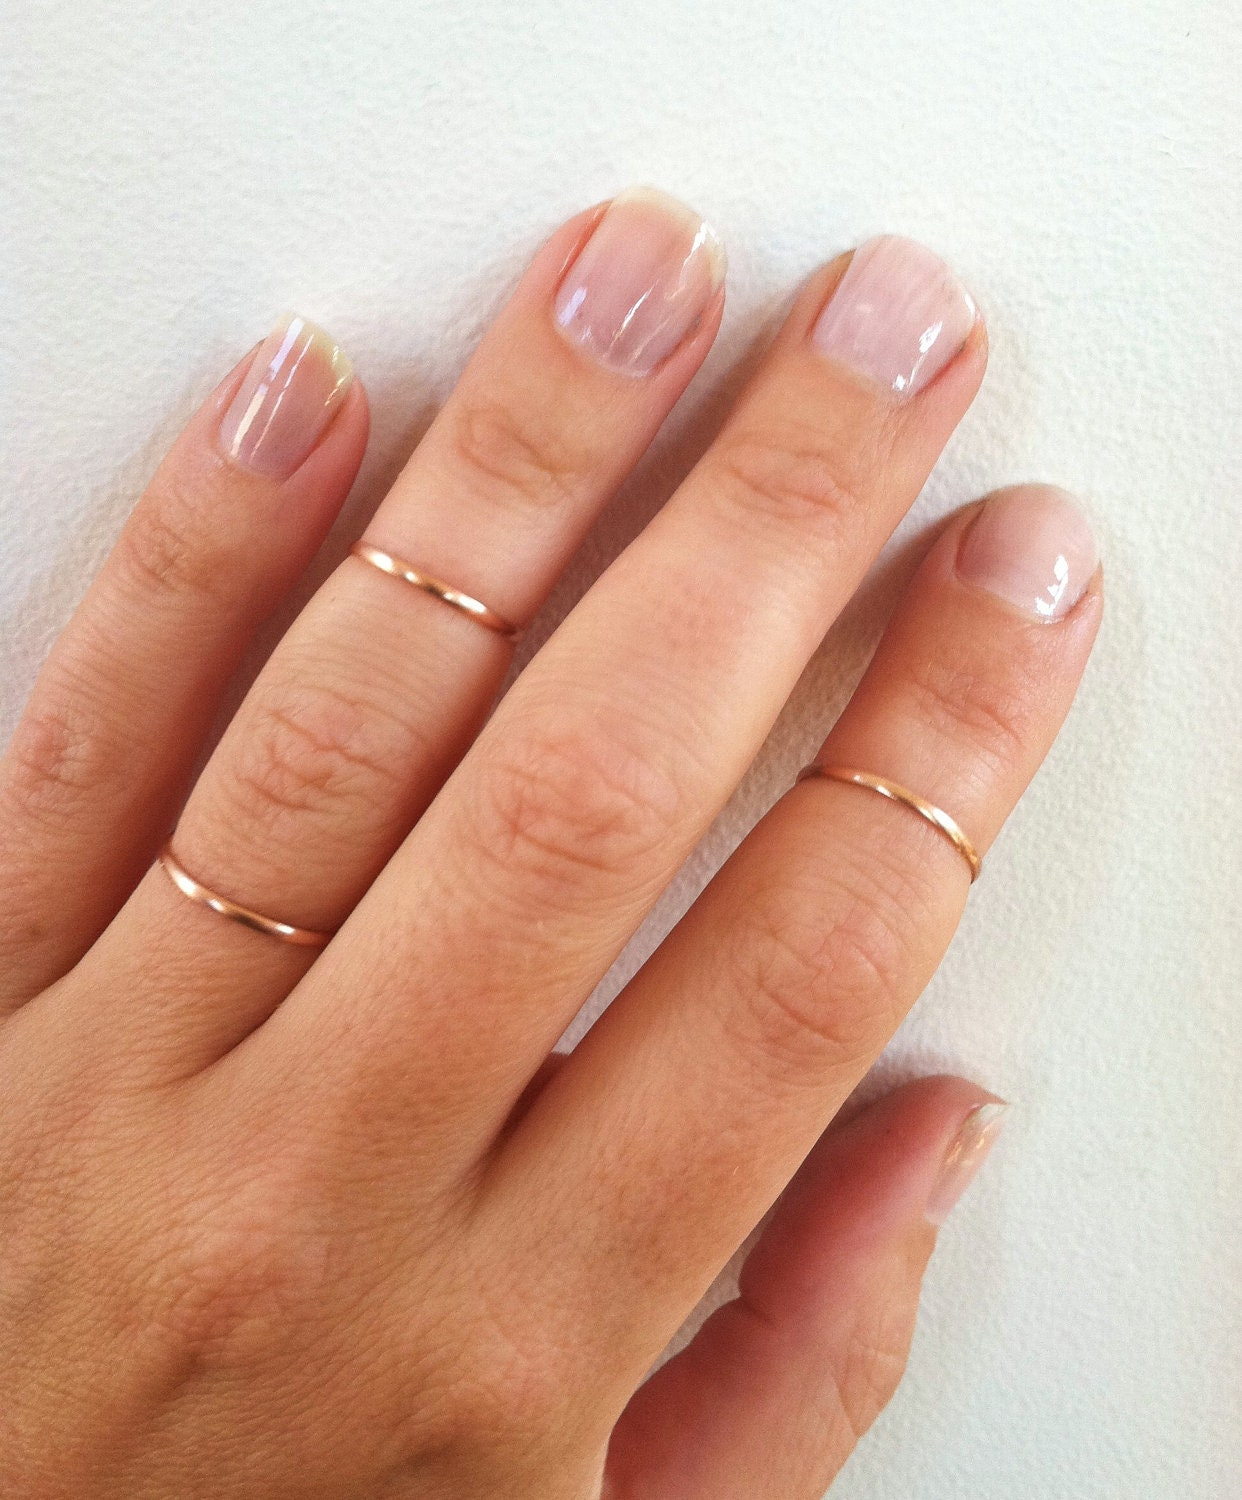 Thin Rose Gold Ring 14k Gold Filled Knuckle Ring Skinny. Ankle Bracelets For Guys. Womens Gold Anklets. Infinity Engagement Band. White Gold Diamond Band. Metal Chains. 1ct Engagement Rings. 14k Gold Bands. Price List Diamond